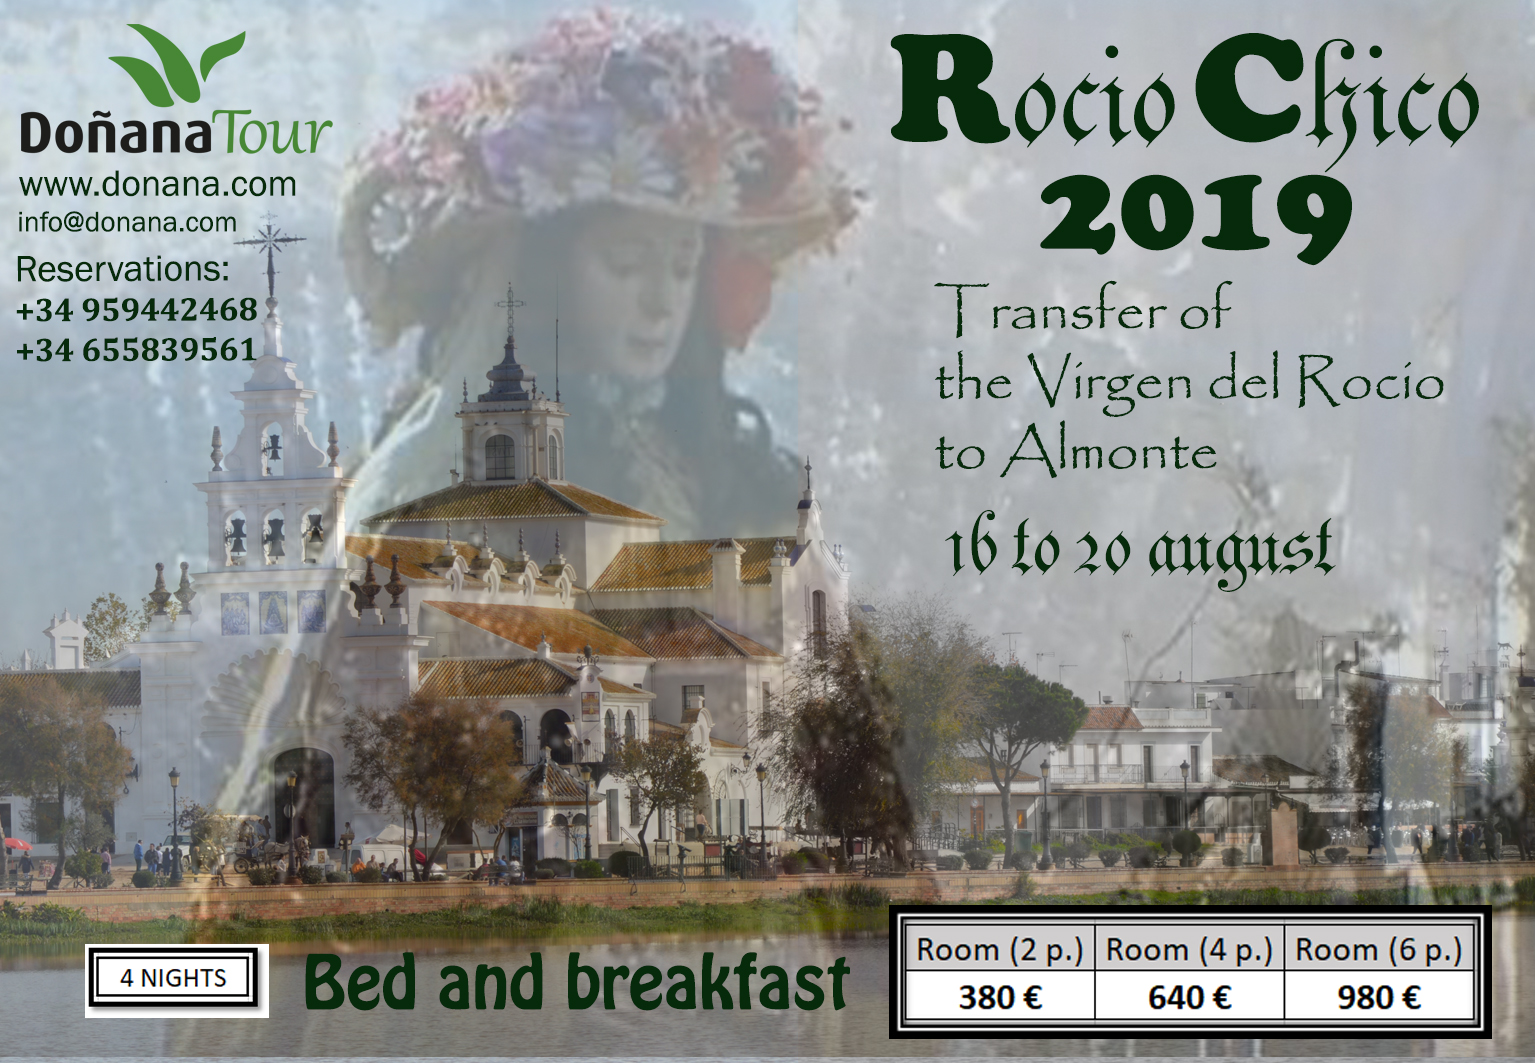 ROCÍO CHICO 2019 TRANSFER OF THE VIRGIN OF THE ROCÍO